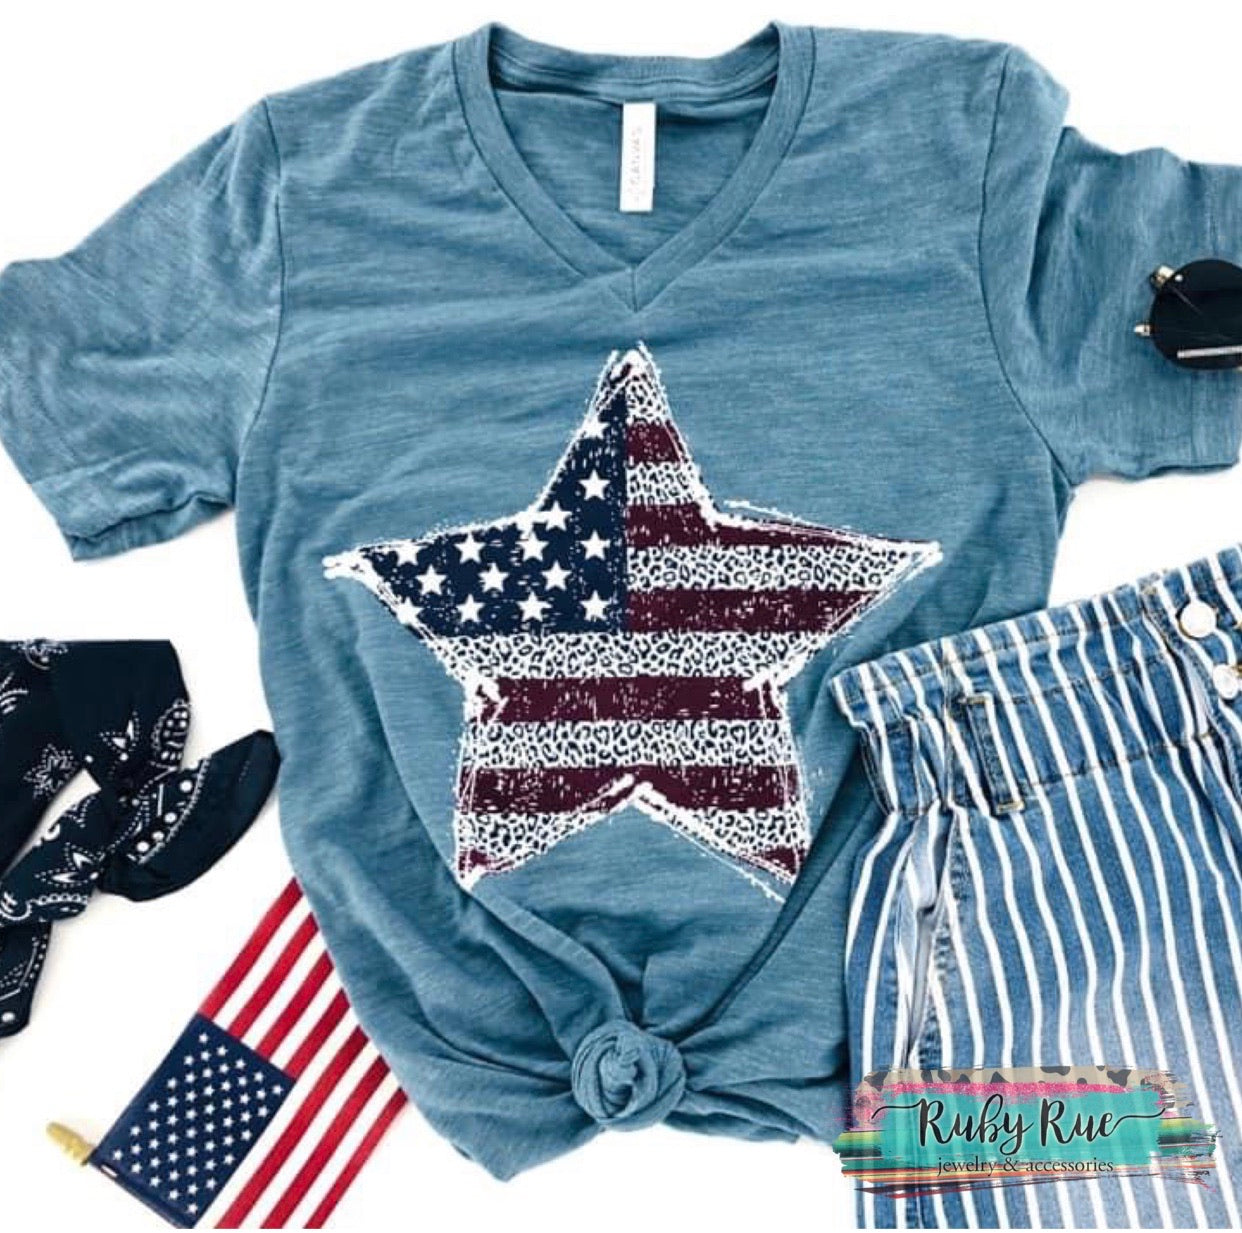 Star Flag Tee - Ruby Rue Jewelry & Accessories